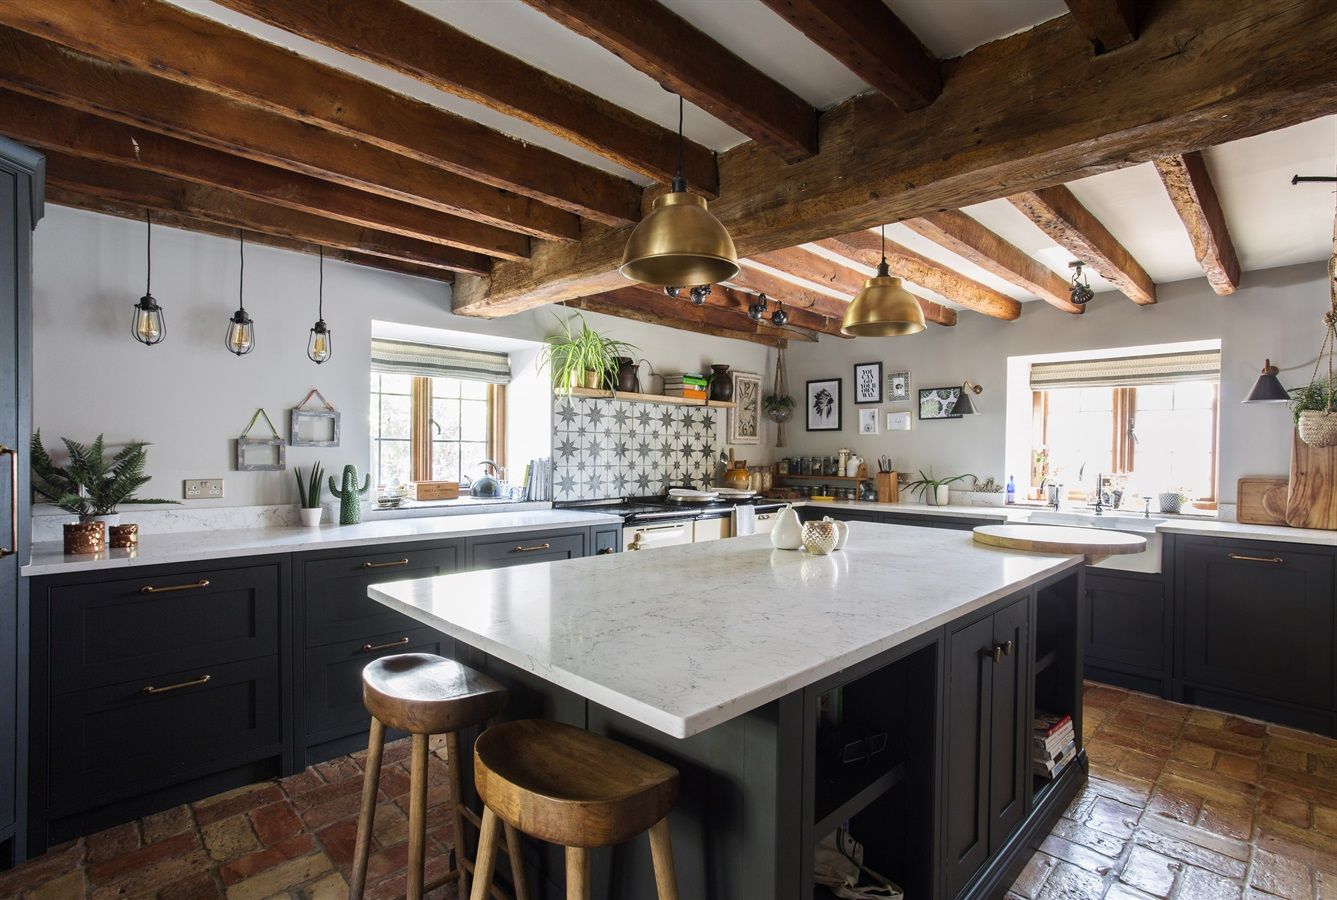 Burlanes Bespoke Wellsdown Kitchen - Handmade kitchen painted in 'Artillery Ground' by Mylands, with white worktops and original wooden beams.